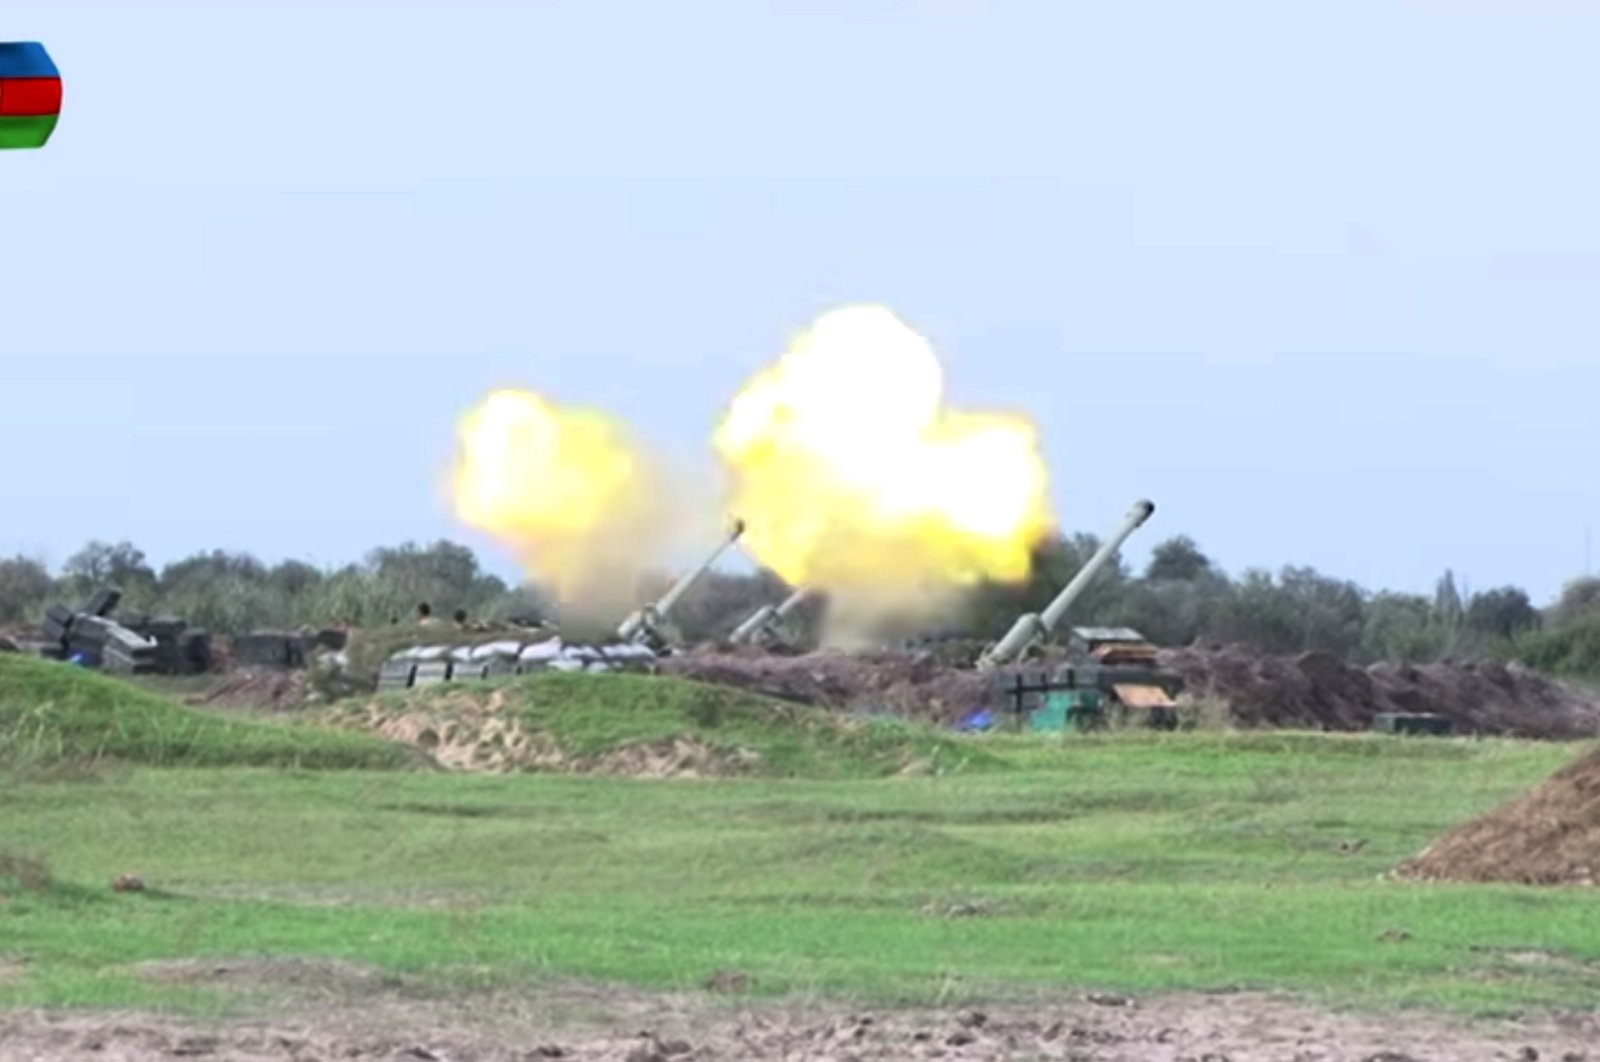 A still image taken from a video released on Sept. 29, 2020, by Azerbaijan's Ministry of Defense shows Azerbaijani artillery being fired at enemy positions deployed in the illegally occupied Nagorno-Karabakh region. (EPA / Azerbaijan Defense Ministry / Handout)